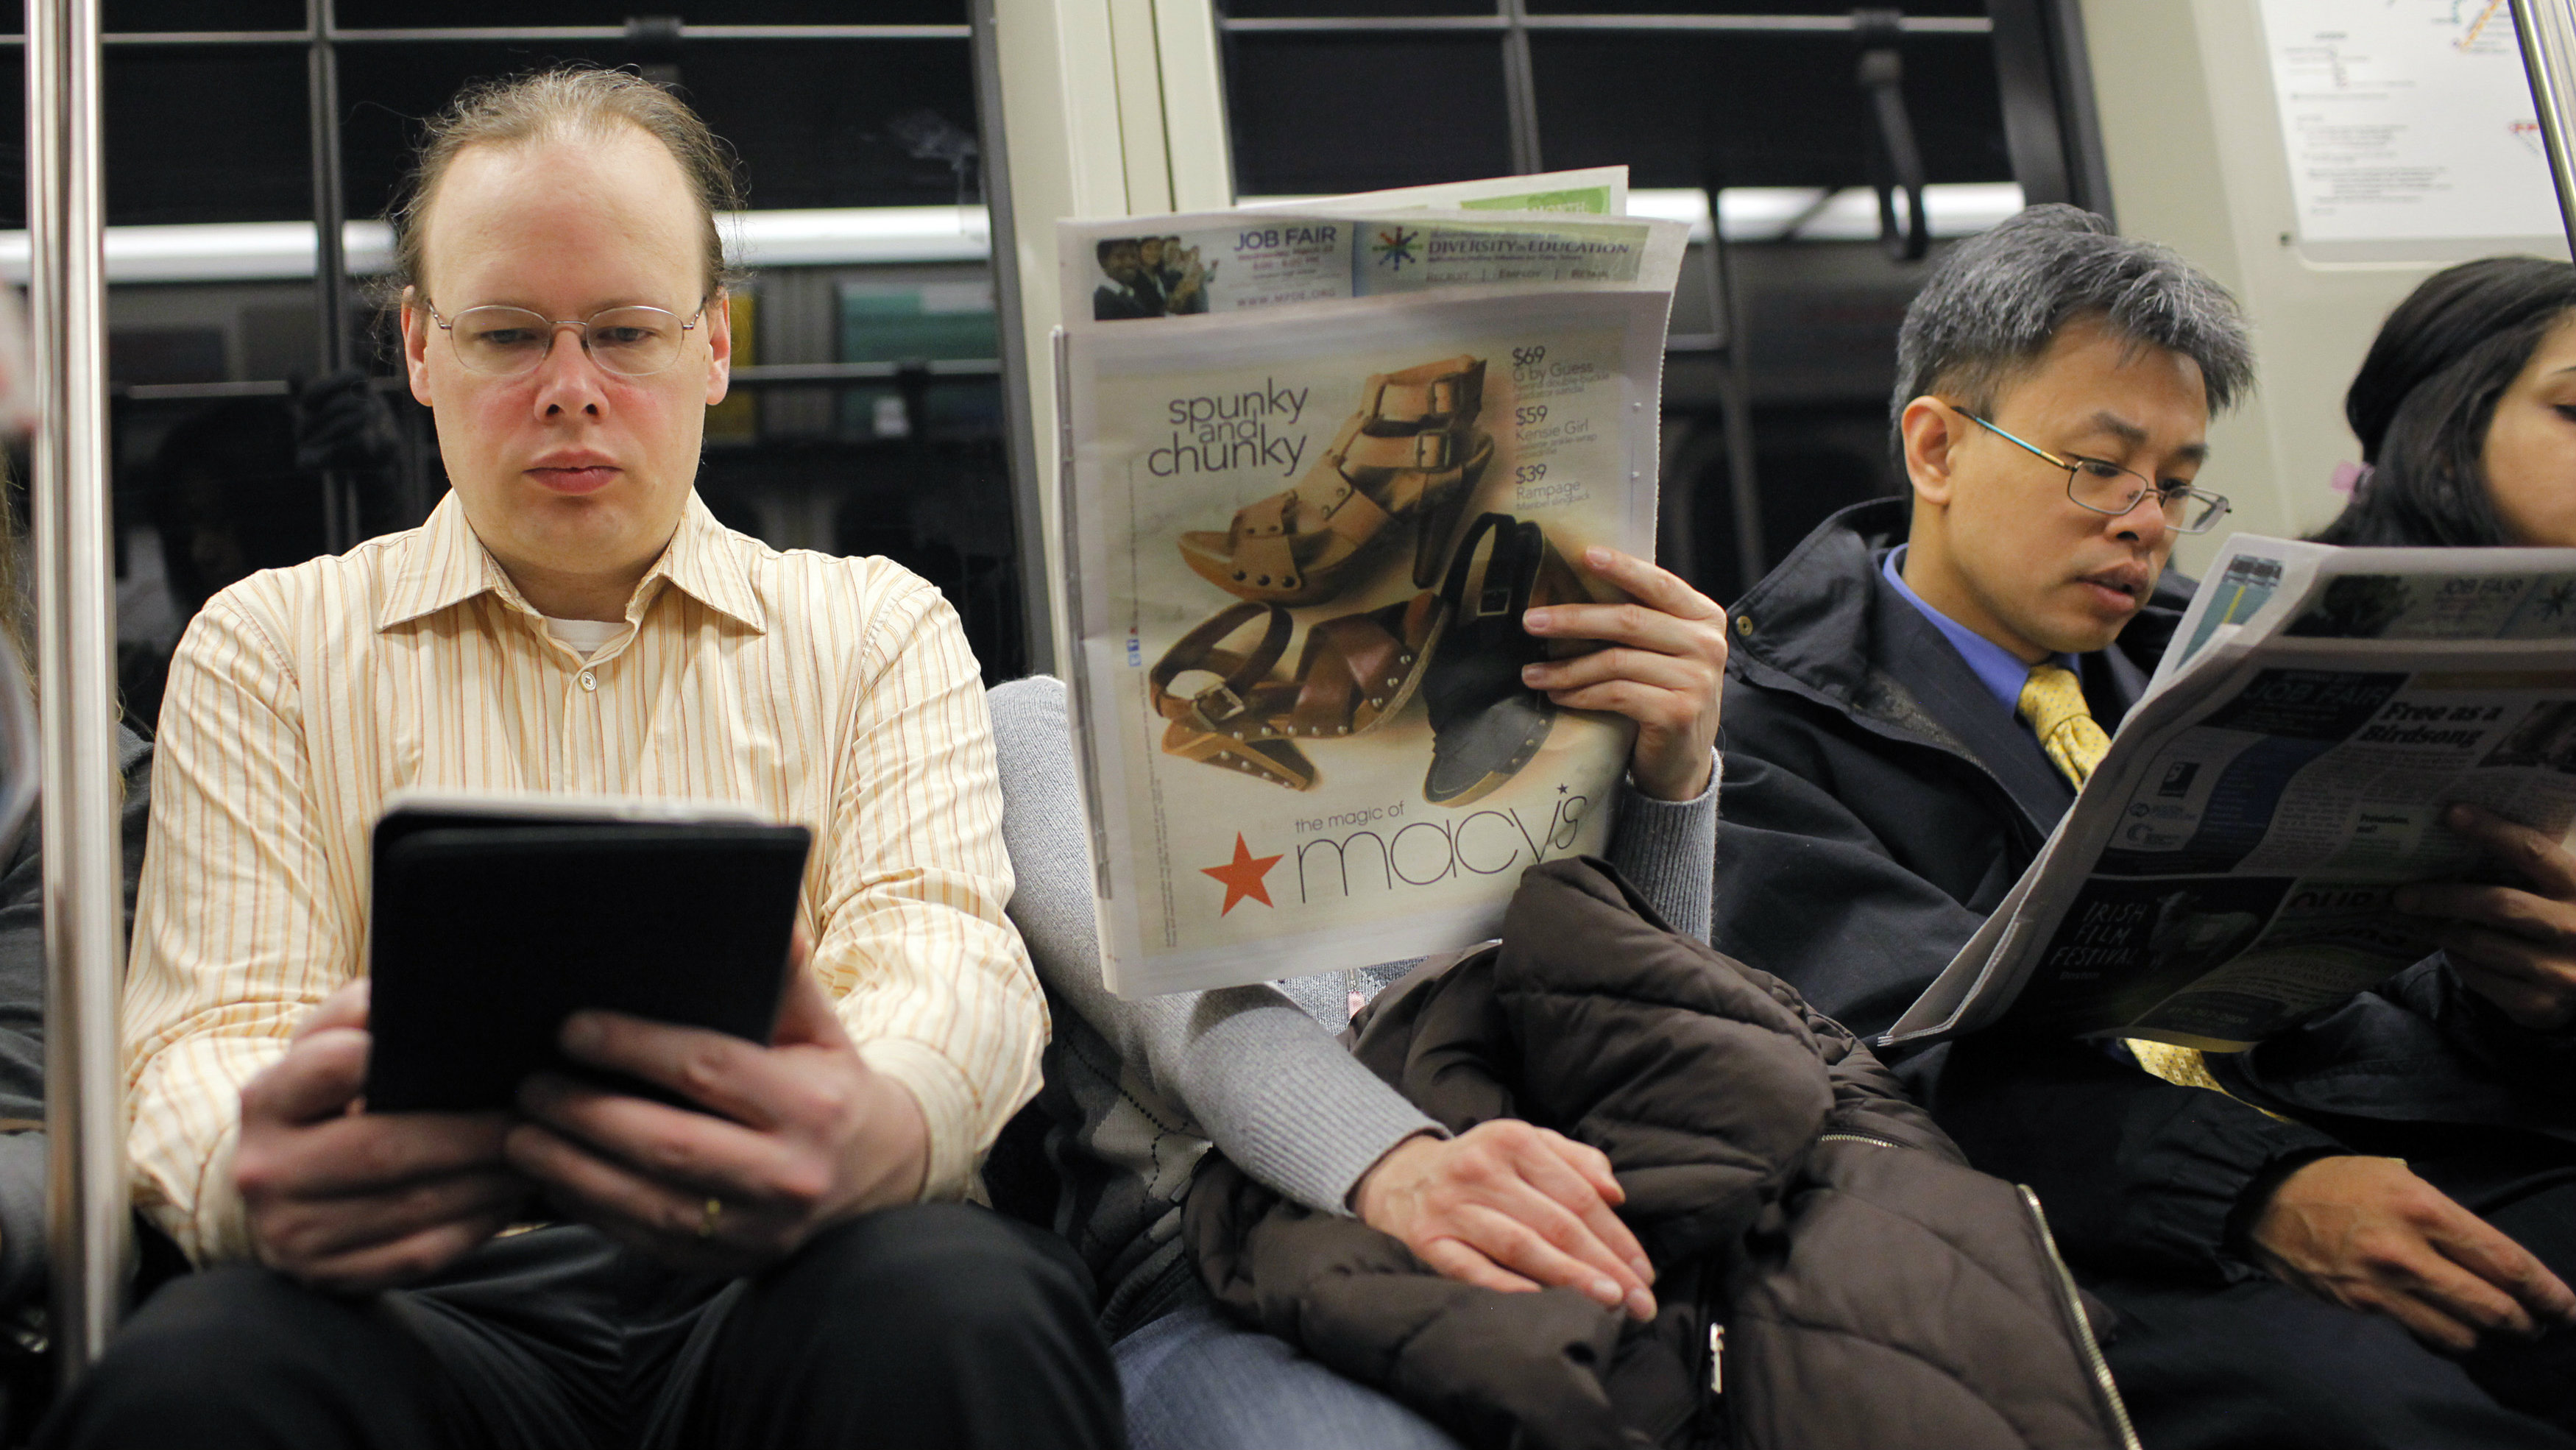 A commuter (L) reads on a Kindle e-reader while riding the subway in Cambridge, Massachusetts March 18, 2011. Publishers are adapting to rising sales of e-books, and the popularity of smart phones and tablets such as the iPad. The retail landscape has changed with Amazon becoming the dominant seller of books while countless book stores go the way of video rental stores. America's No. 2 book store chain, Borders, is bankrupt. Some authors have dropped their publishers entirely, self-publishing online and using social media to connect with readers. Picture taken March 18, 2011. To match Special Report PUBLISHING/EBOOKS/ REUTERS/Brian Snyder (UNITED STATES - Tags: MEDIA BUSINESS SCI TECH)